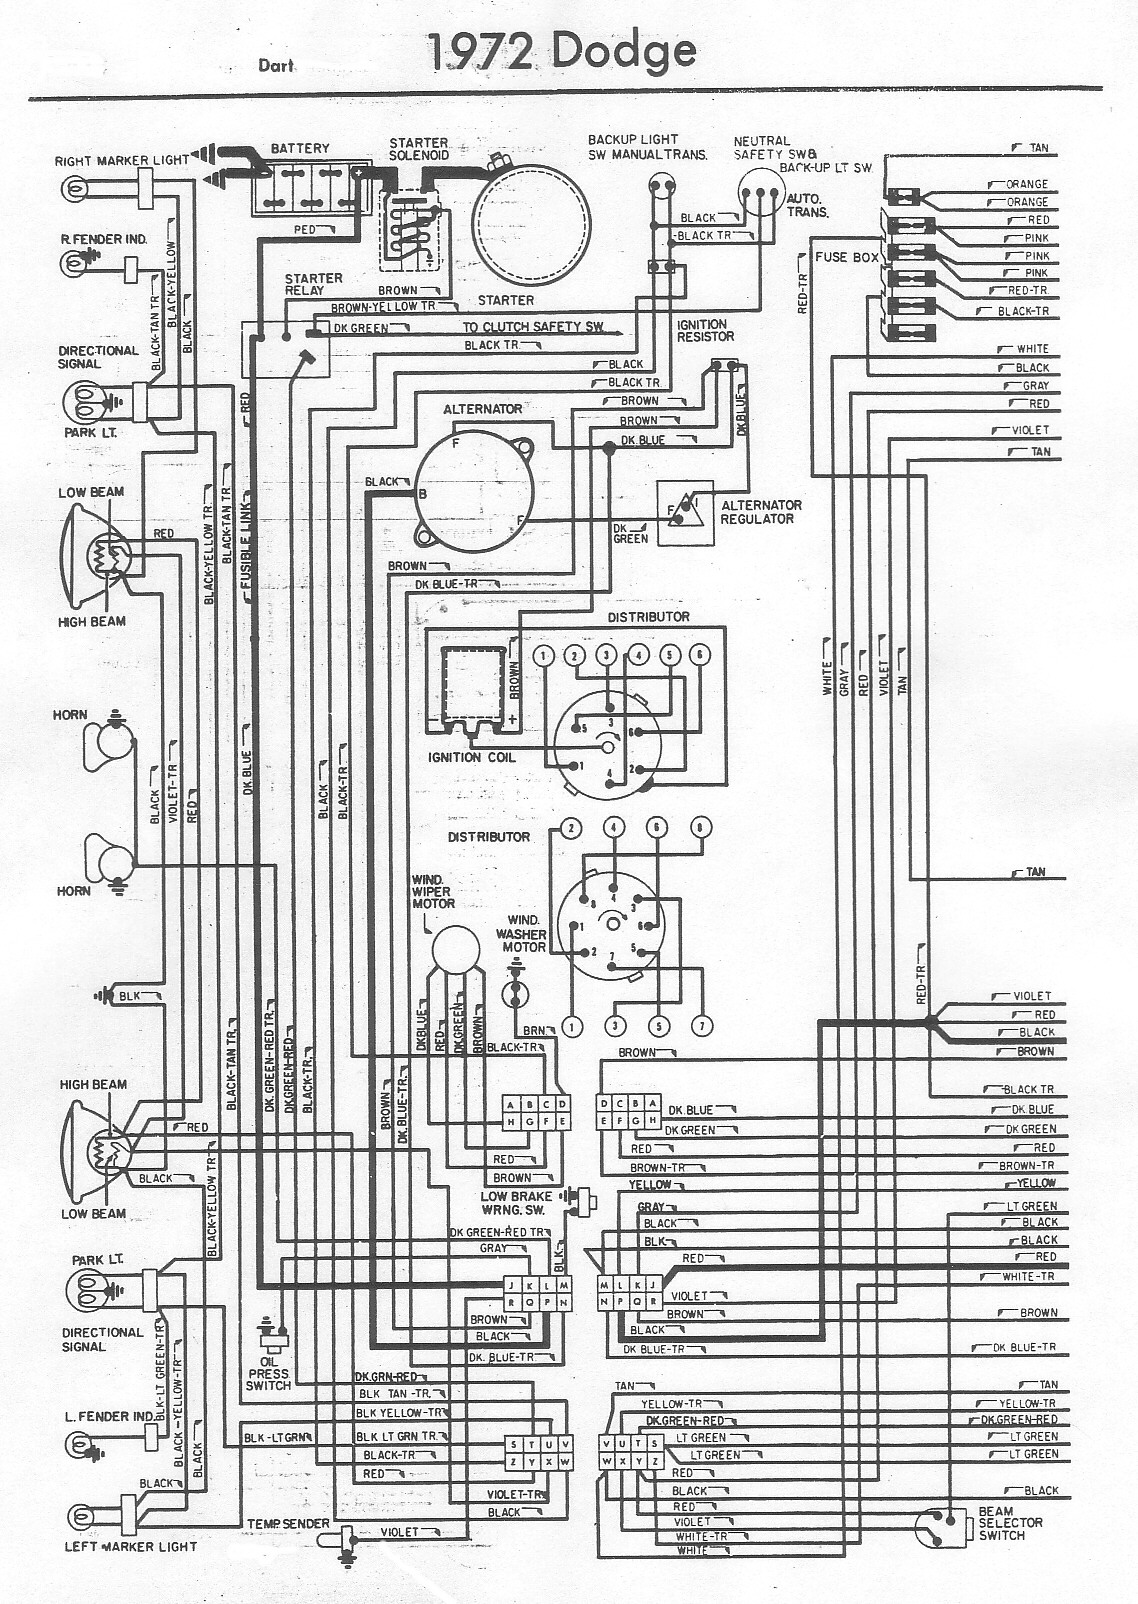 small resolution of 1972 dodge demon wiring diagrams basic electronics wiring diagram 1970 dodge truck wiring diagrams most searched